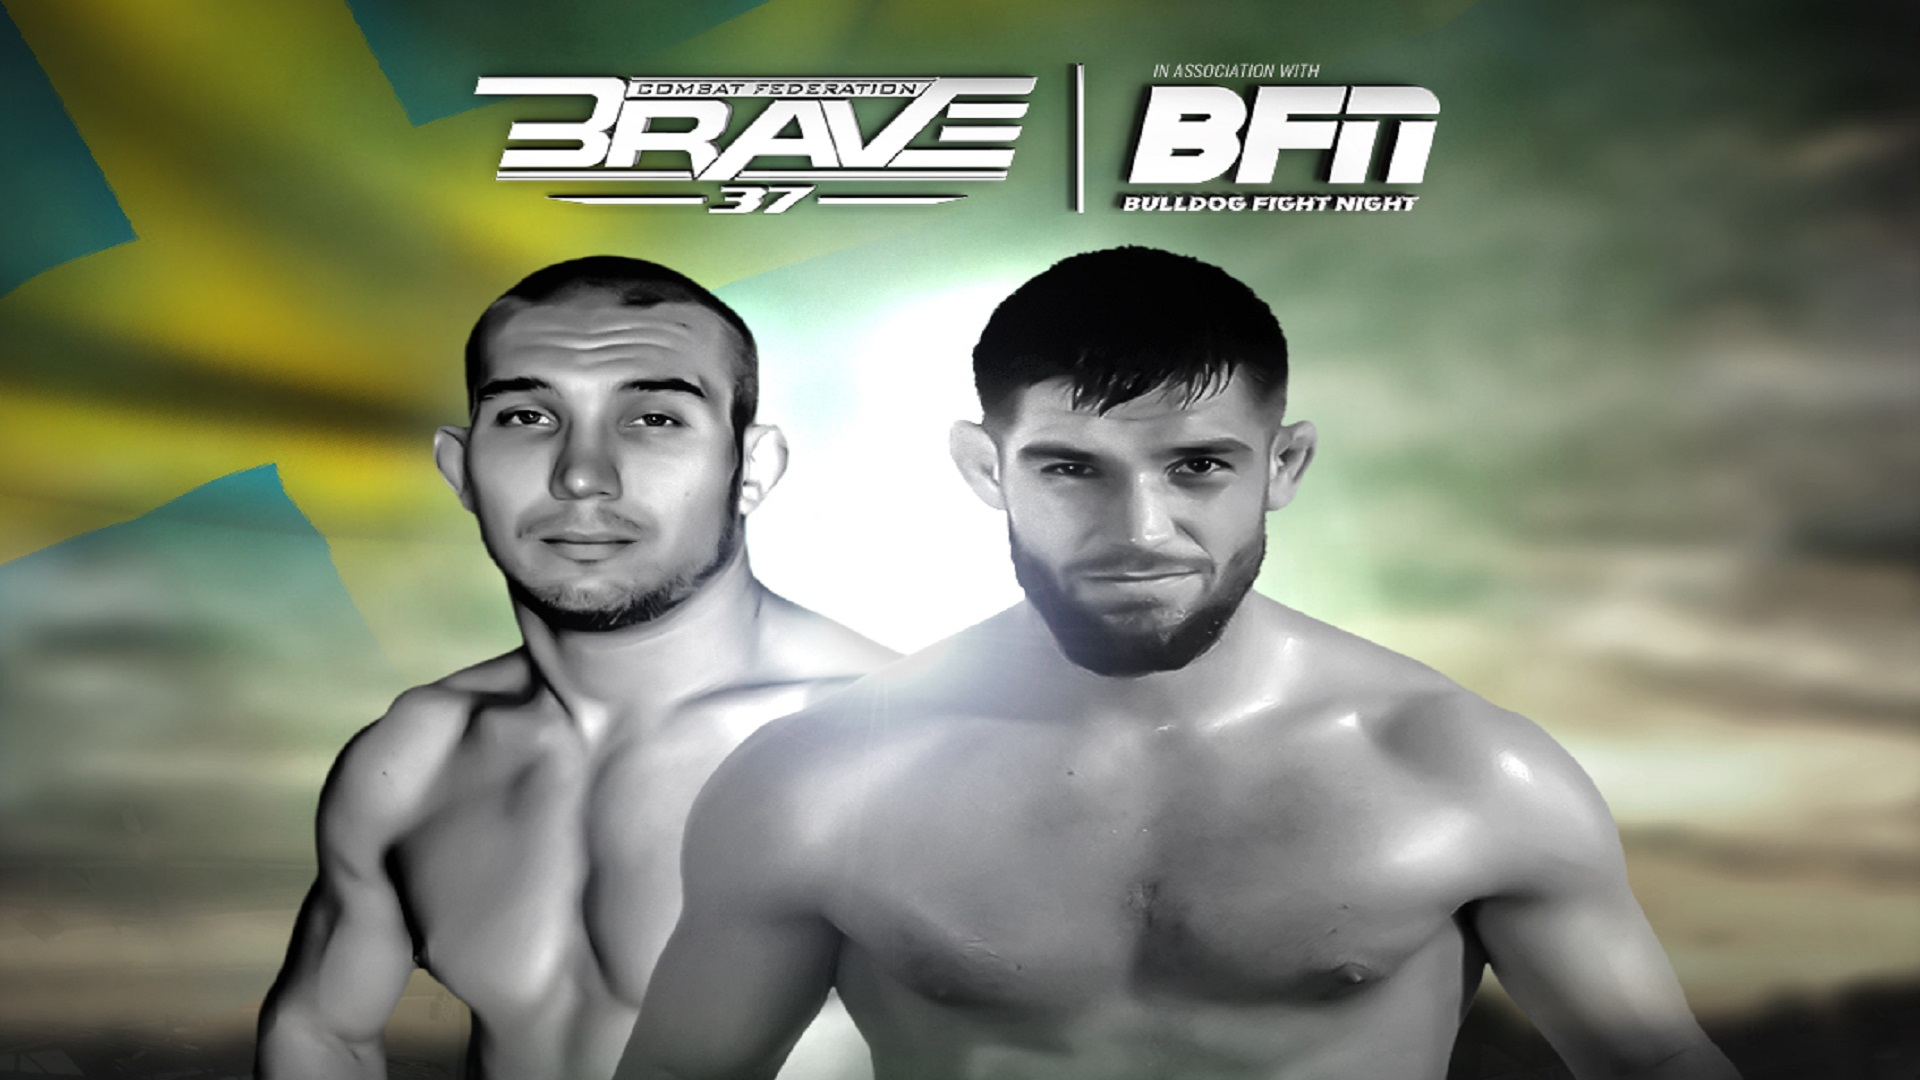 BRAVE-CF-37-Fight-Card